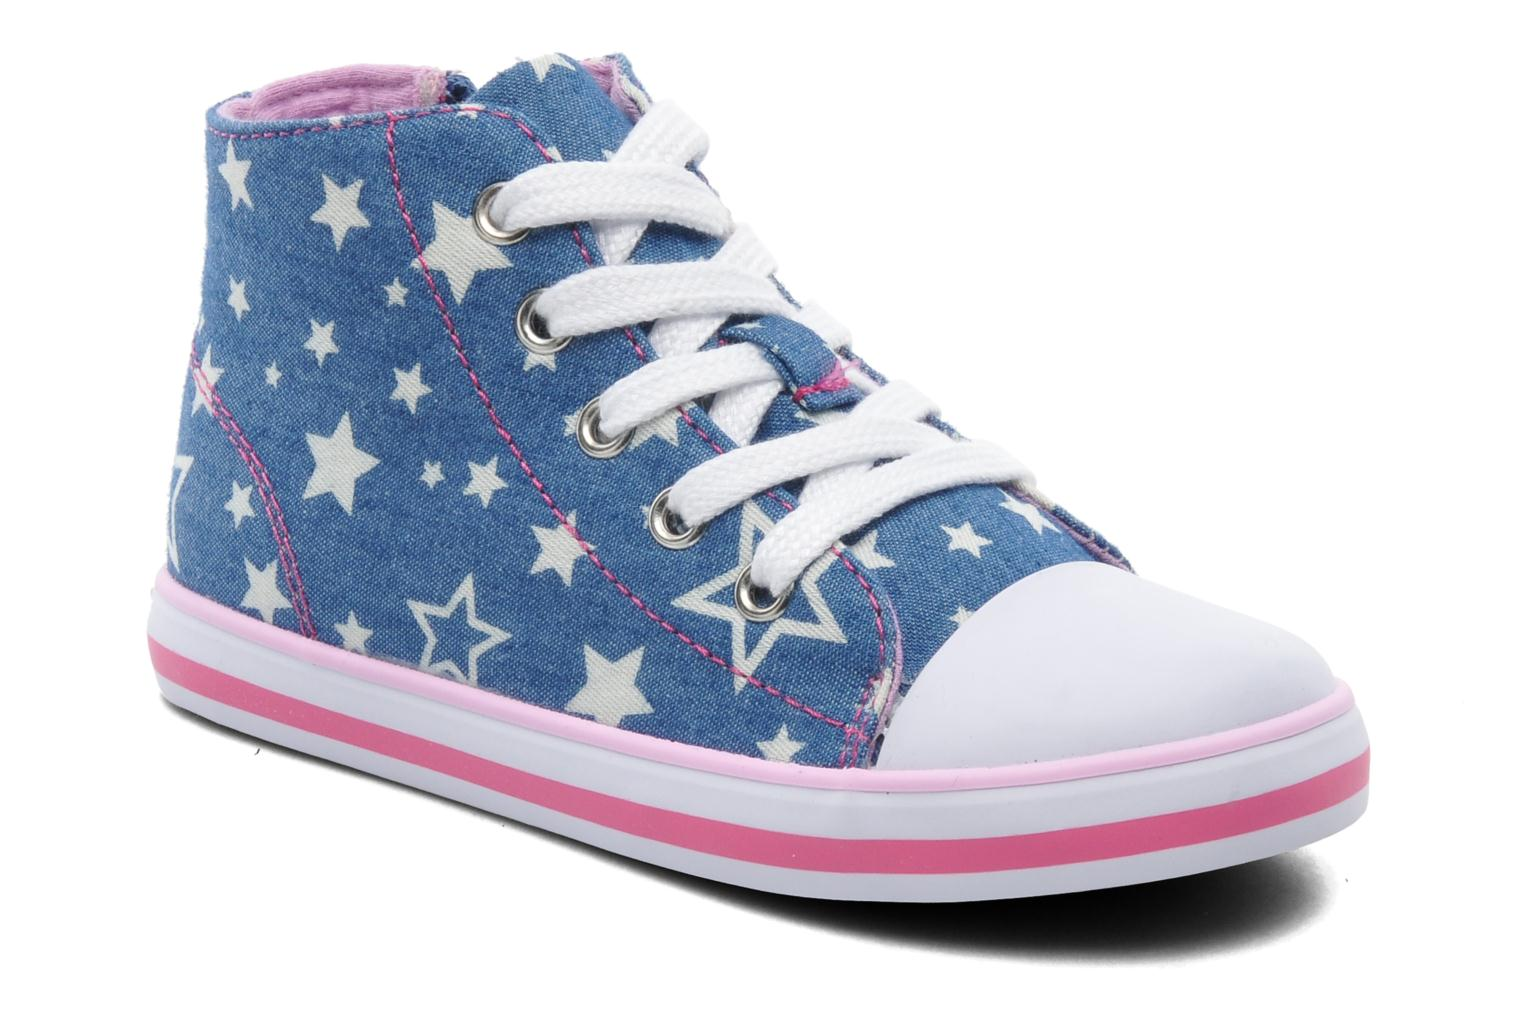 Sneakers cremixi by Chicco